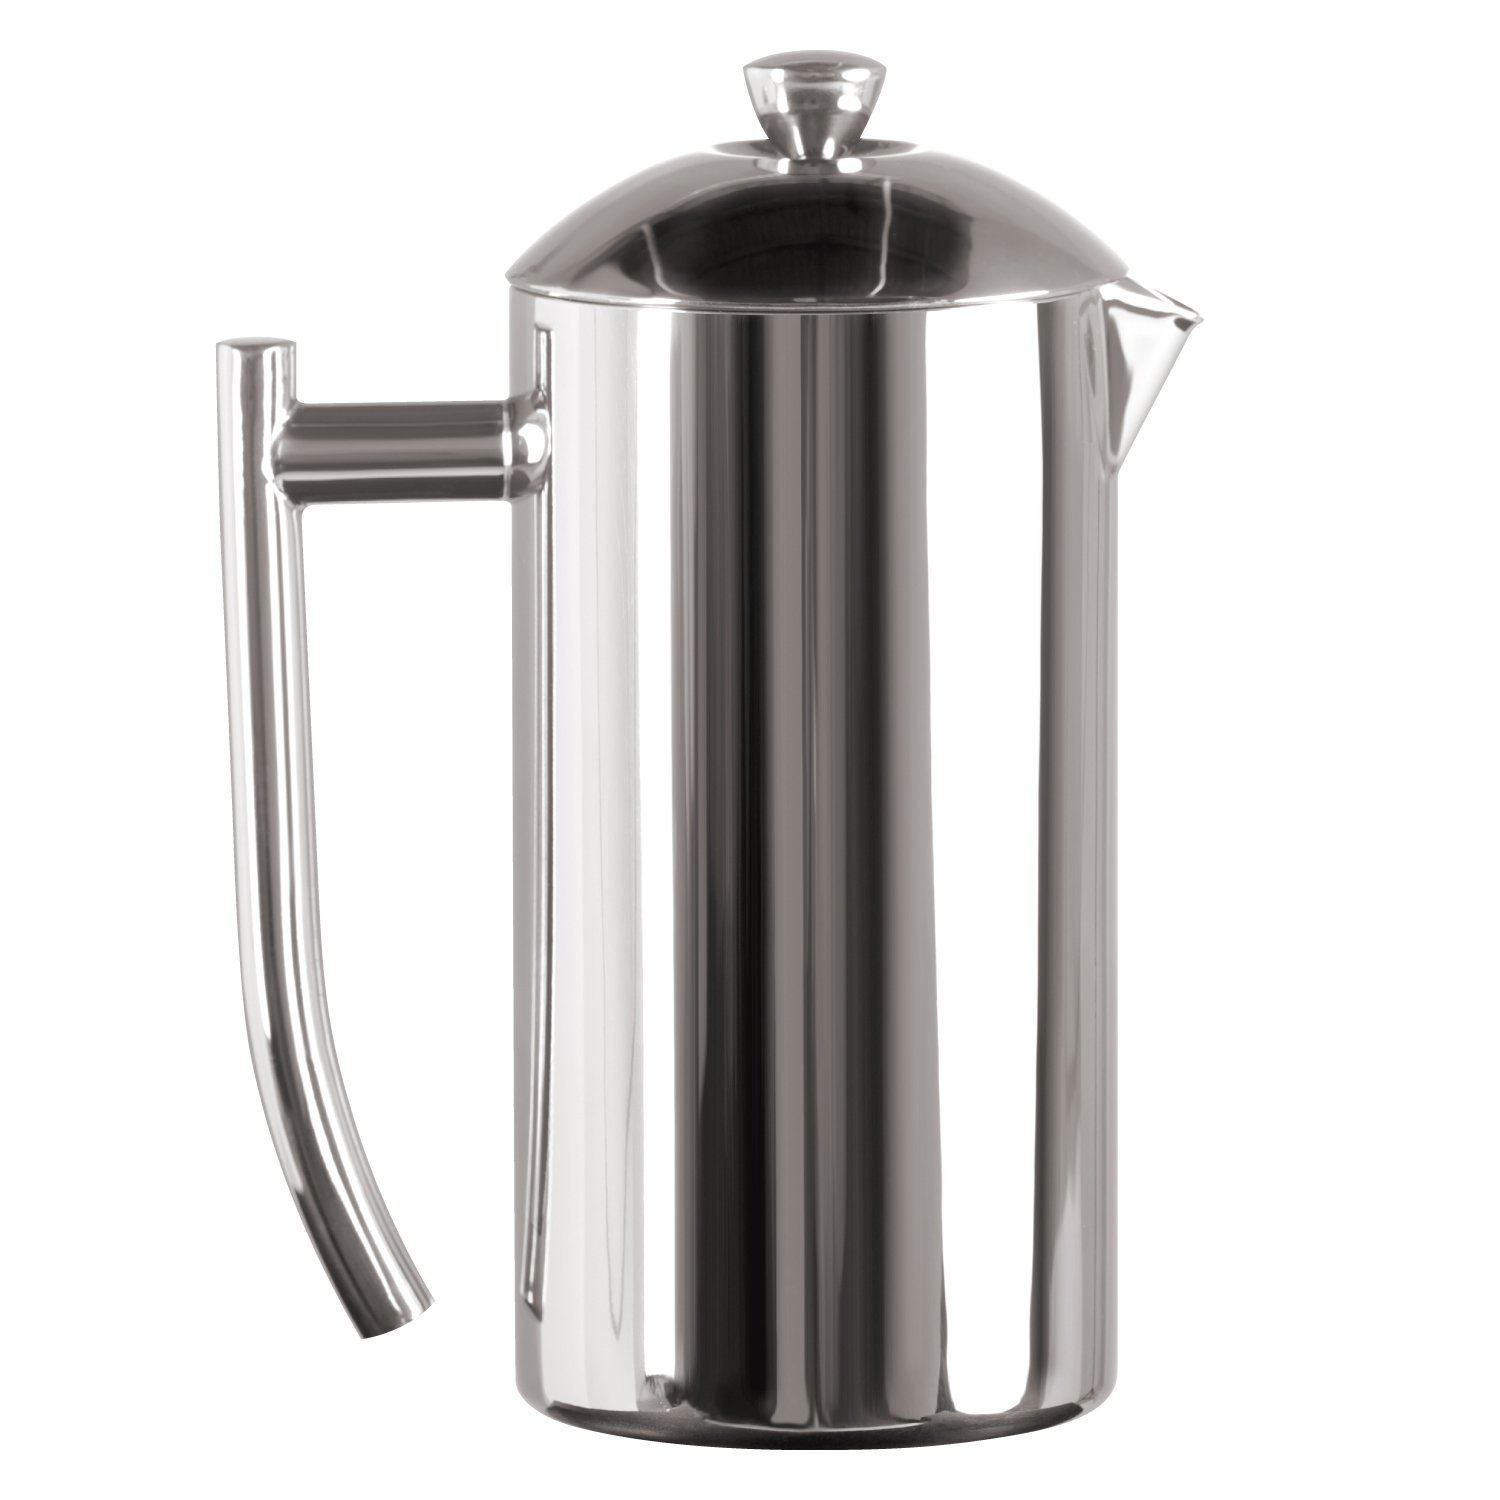 Best French Press Reviews: Making Coffee with Style 8